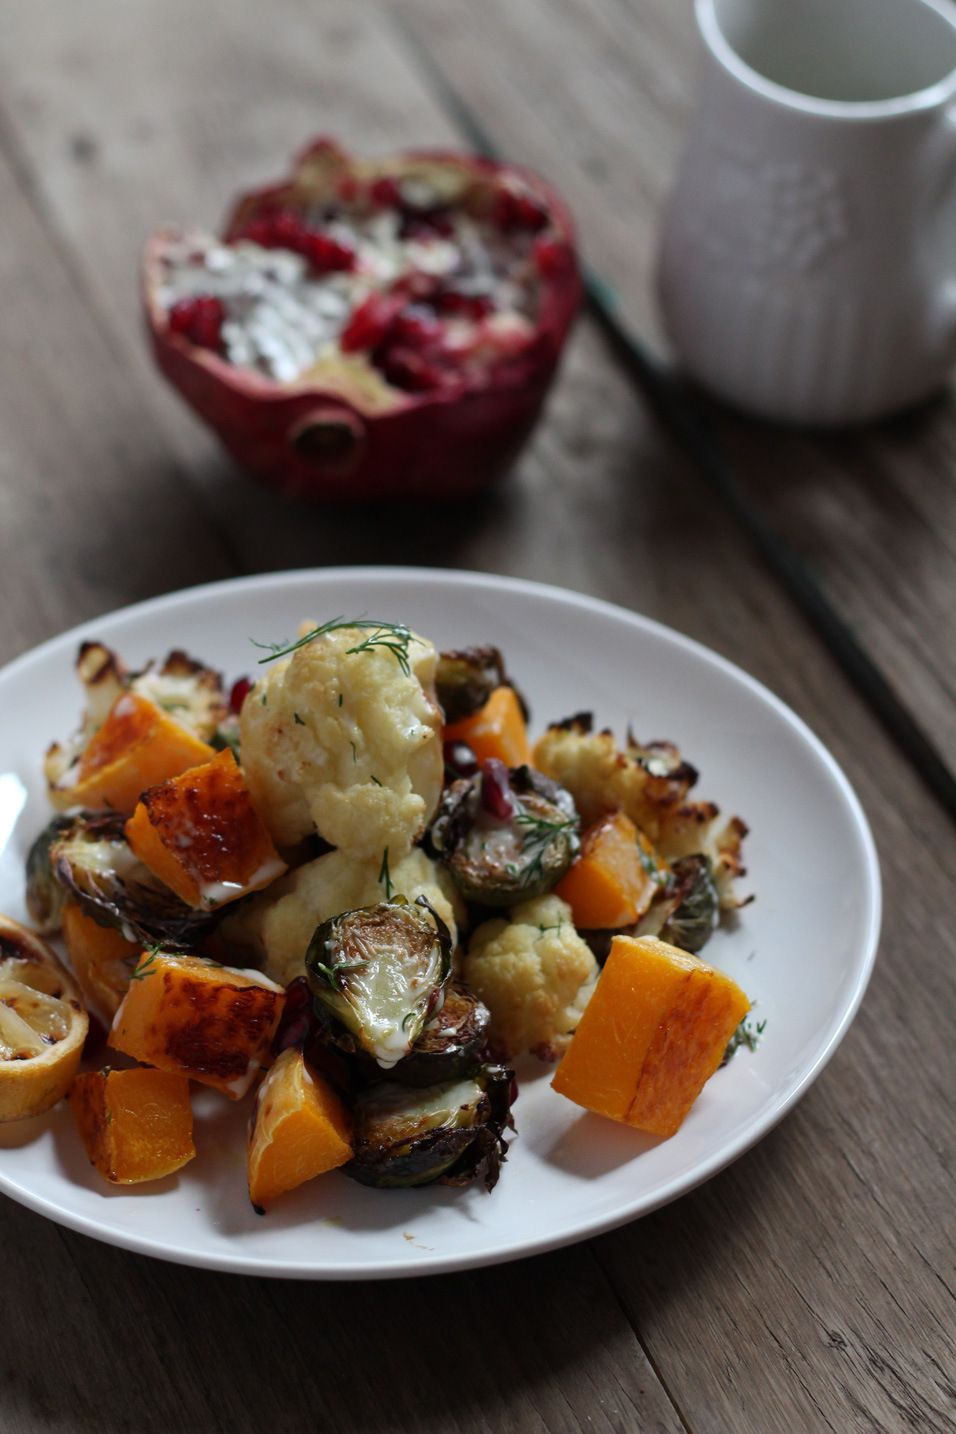 Roasted Vegetable Salad with pomegranates and horseradish dill dressing